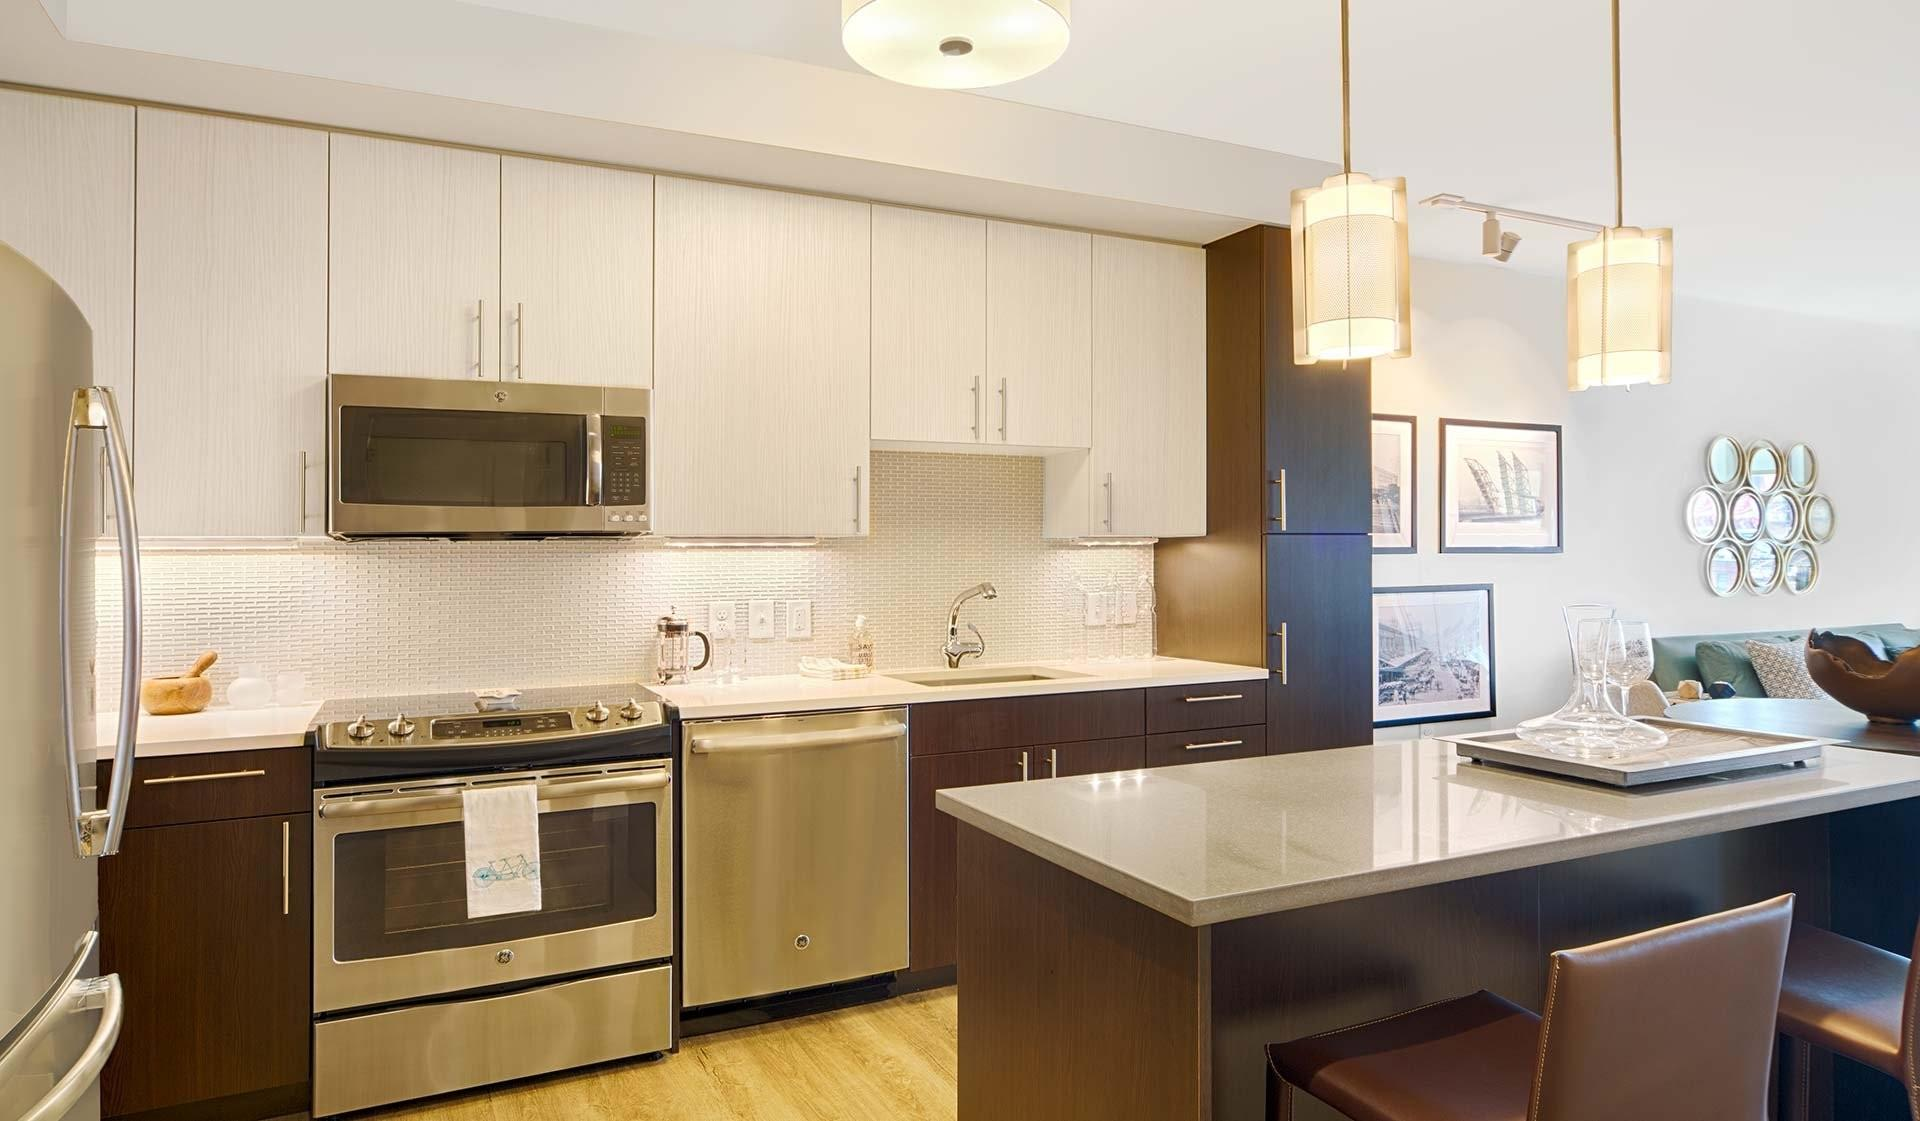 Rooms: One Canal Apartment Homes Apartments, Boston MA